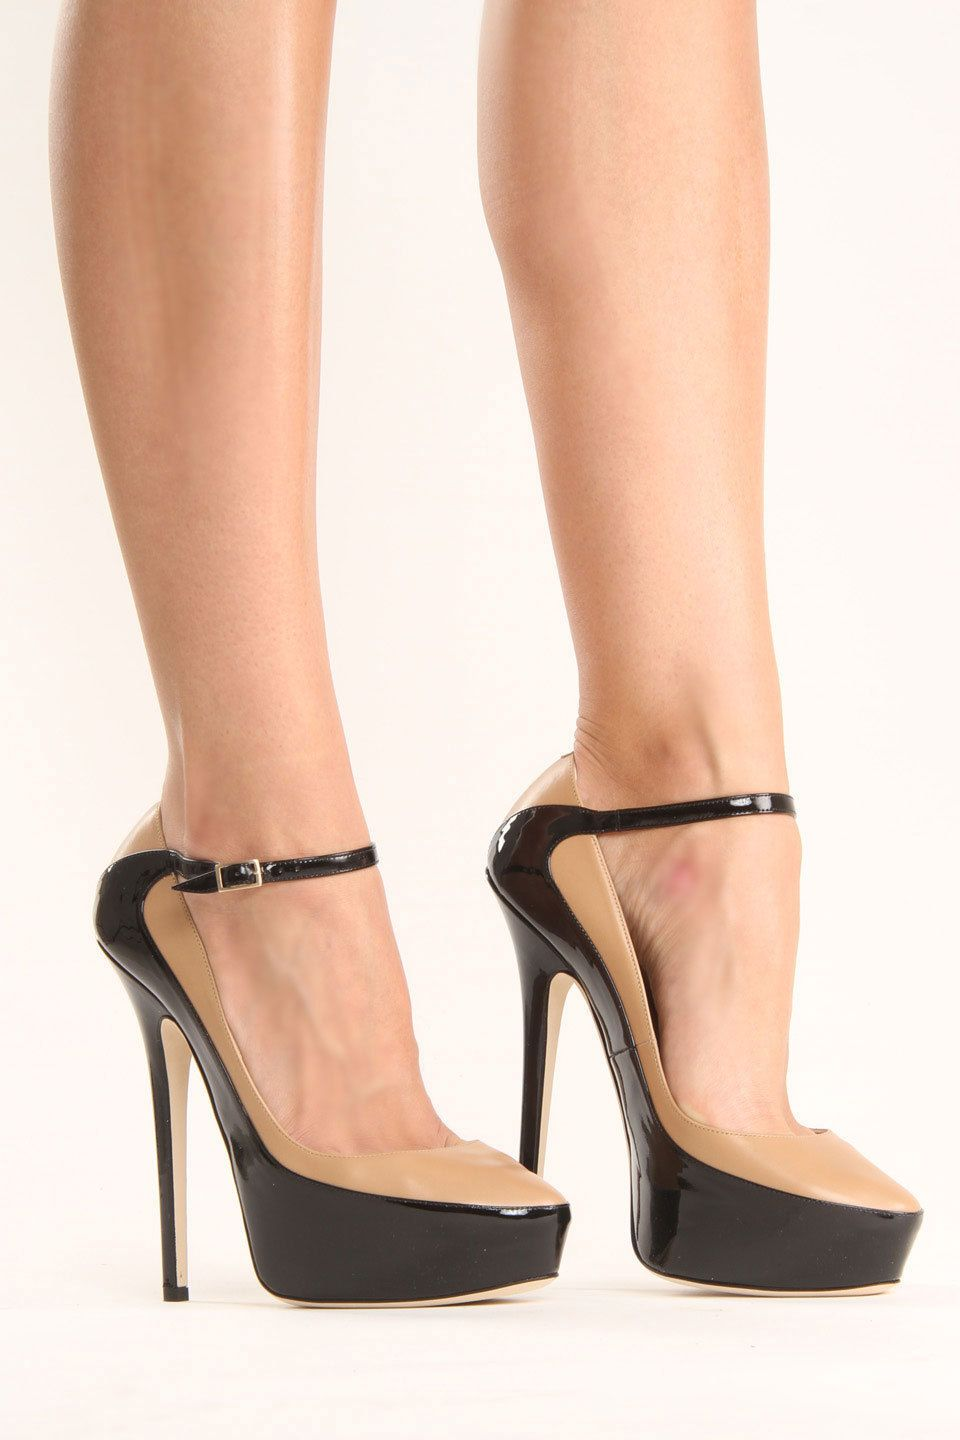 9874d73f2851 Nude + Black Pumps   Jimmy Choo They should come up with a new name for